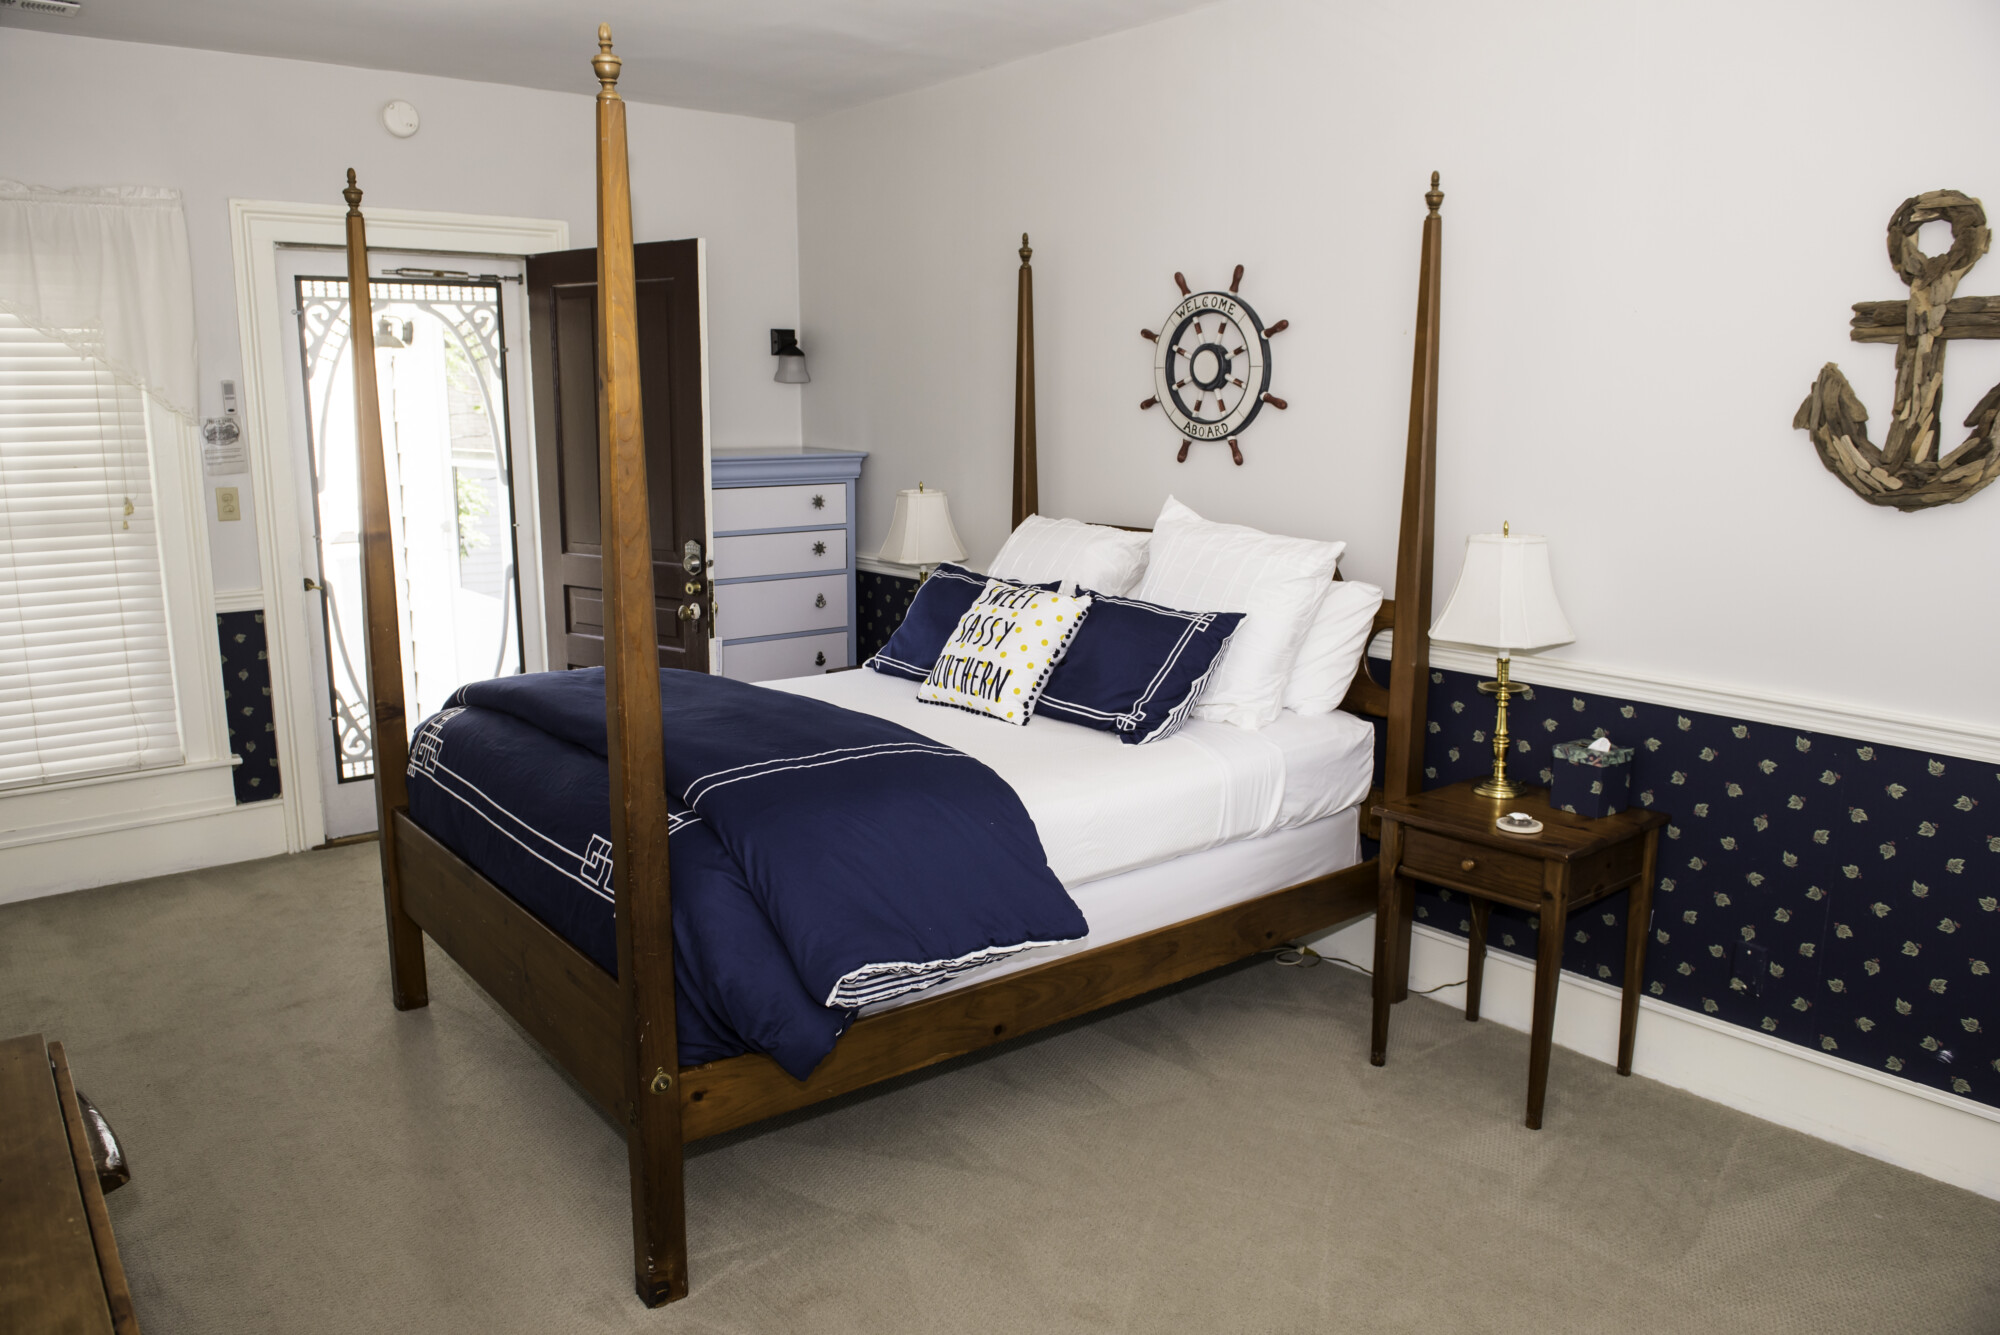 Queen size bed with blue color tone